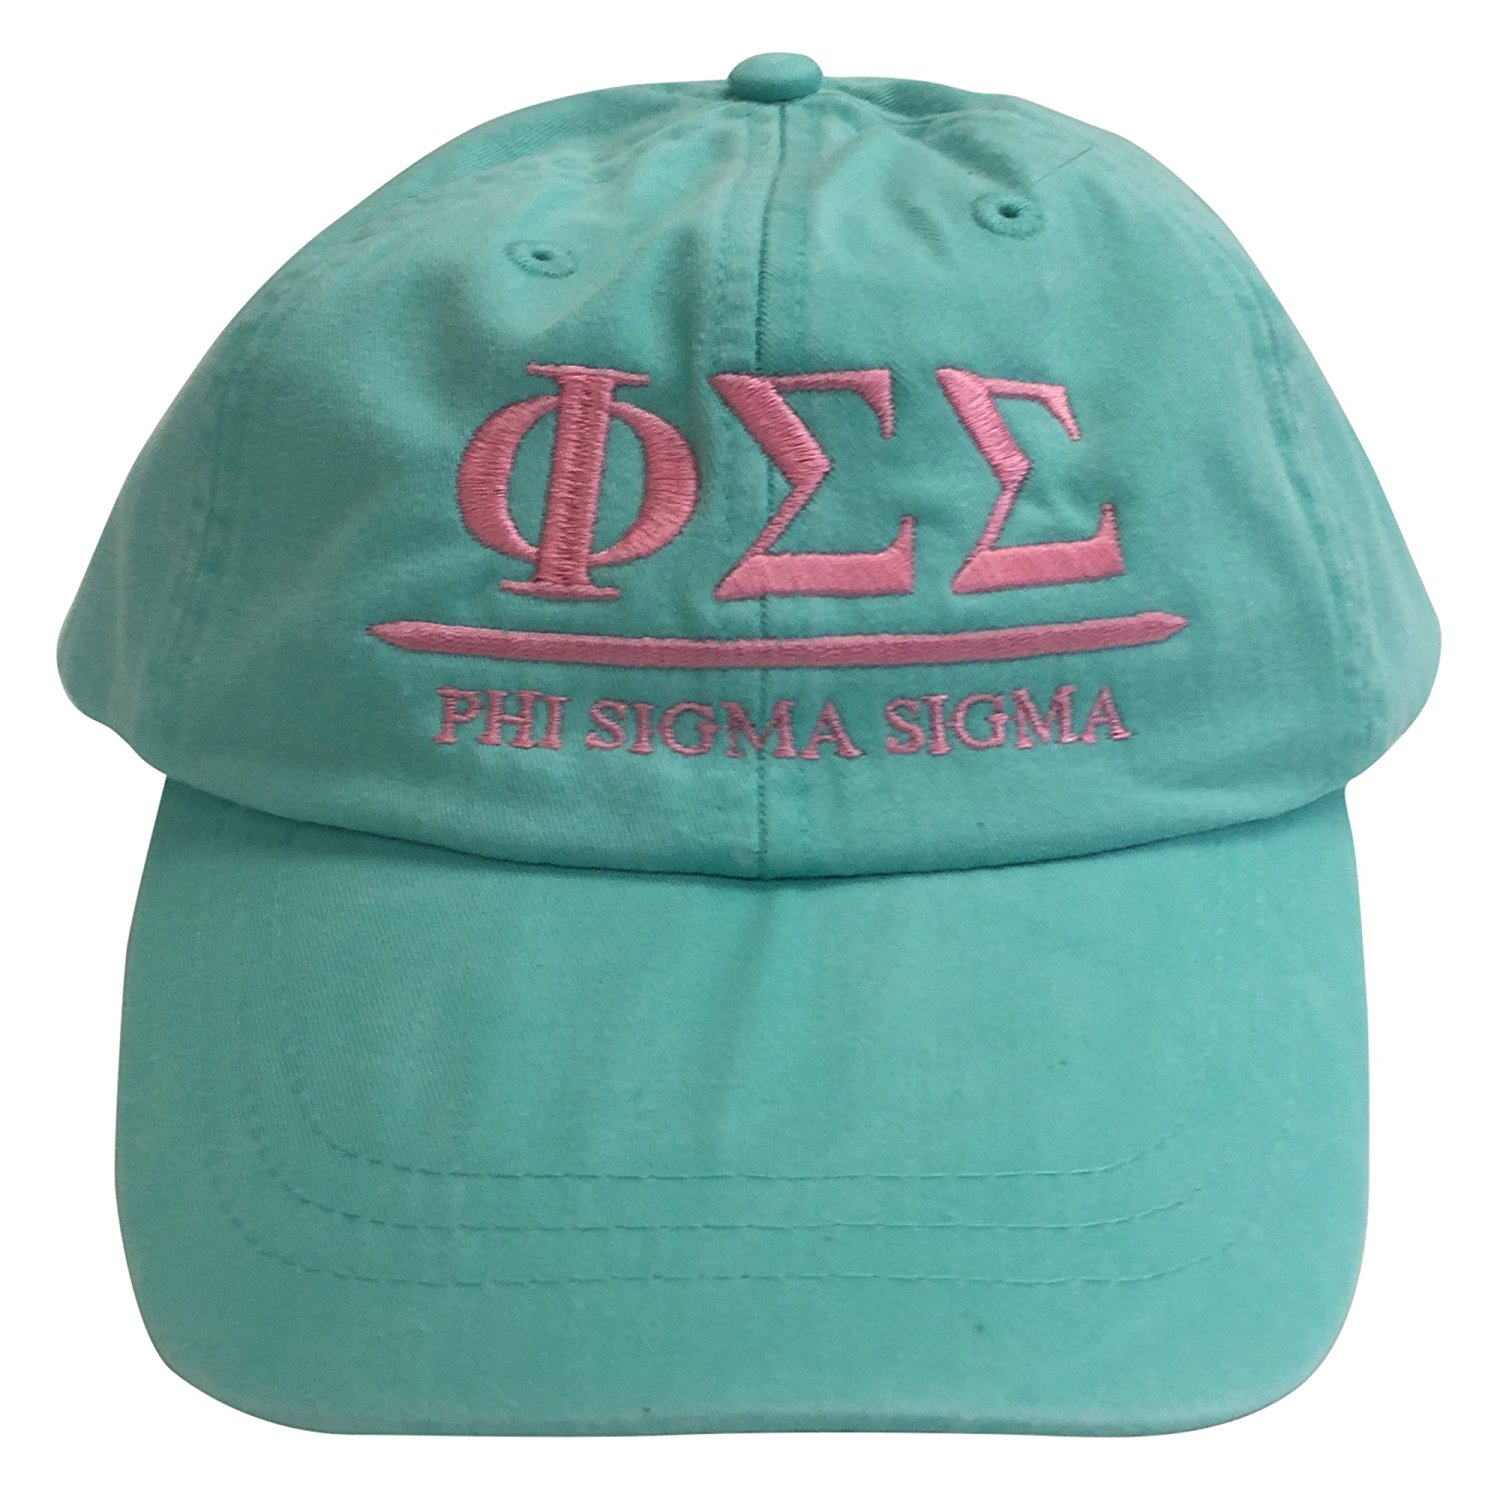 cfb49e4ad55 Get Quotations · Phi Sigma Sigma (B) Sea Foam Hat with Coral Thread  Sorority Baseball Hat Cap